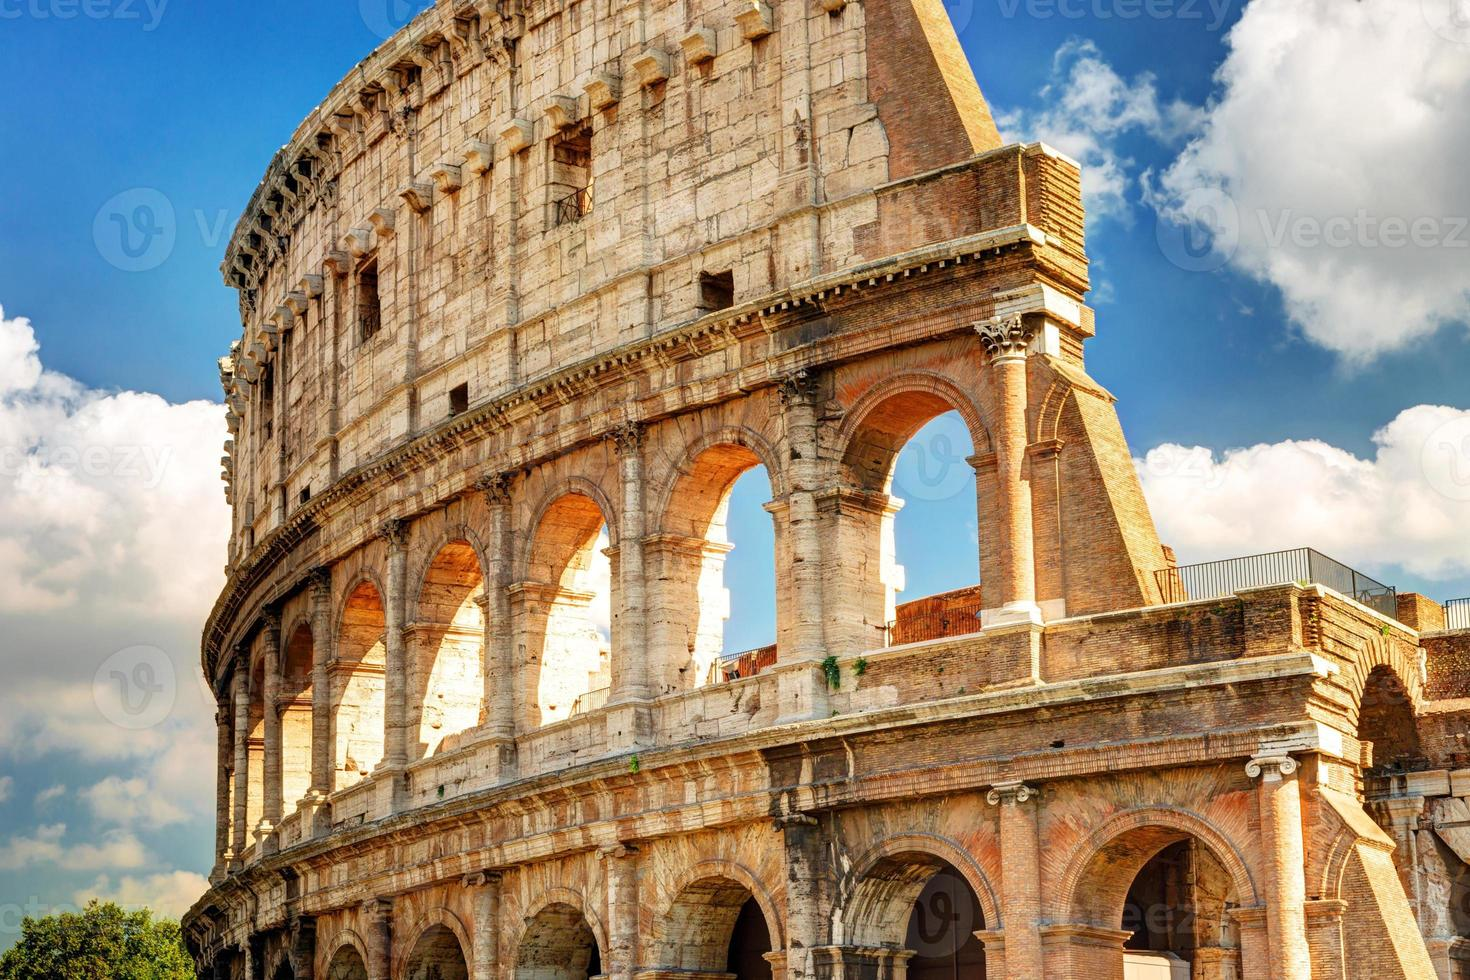 View of the Colosseum in Rome photo